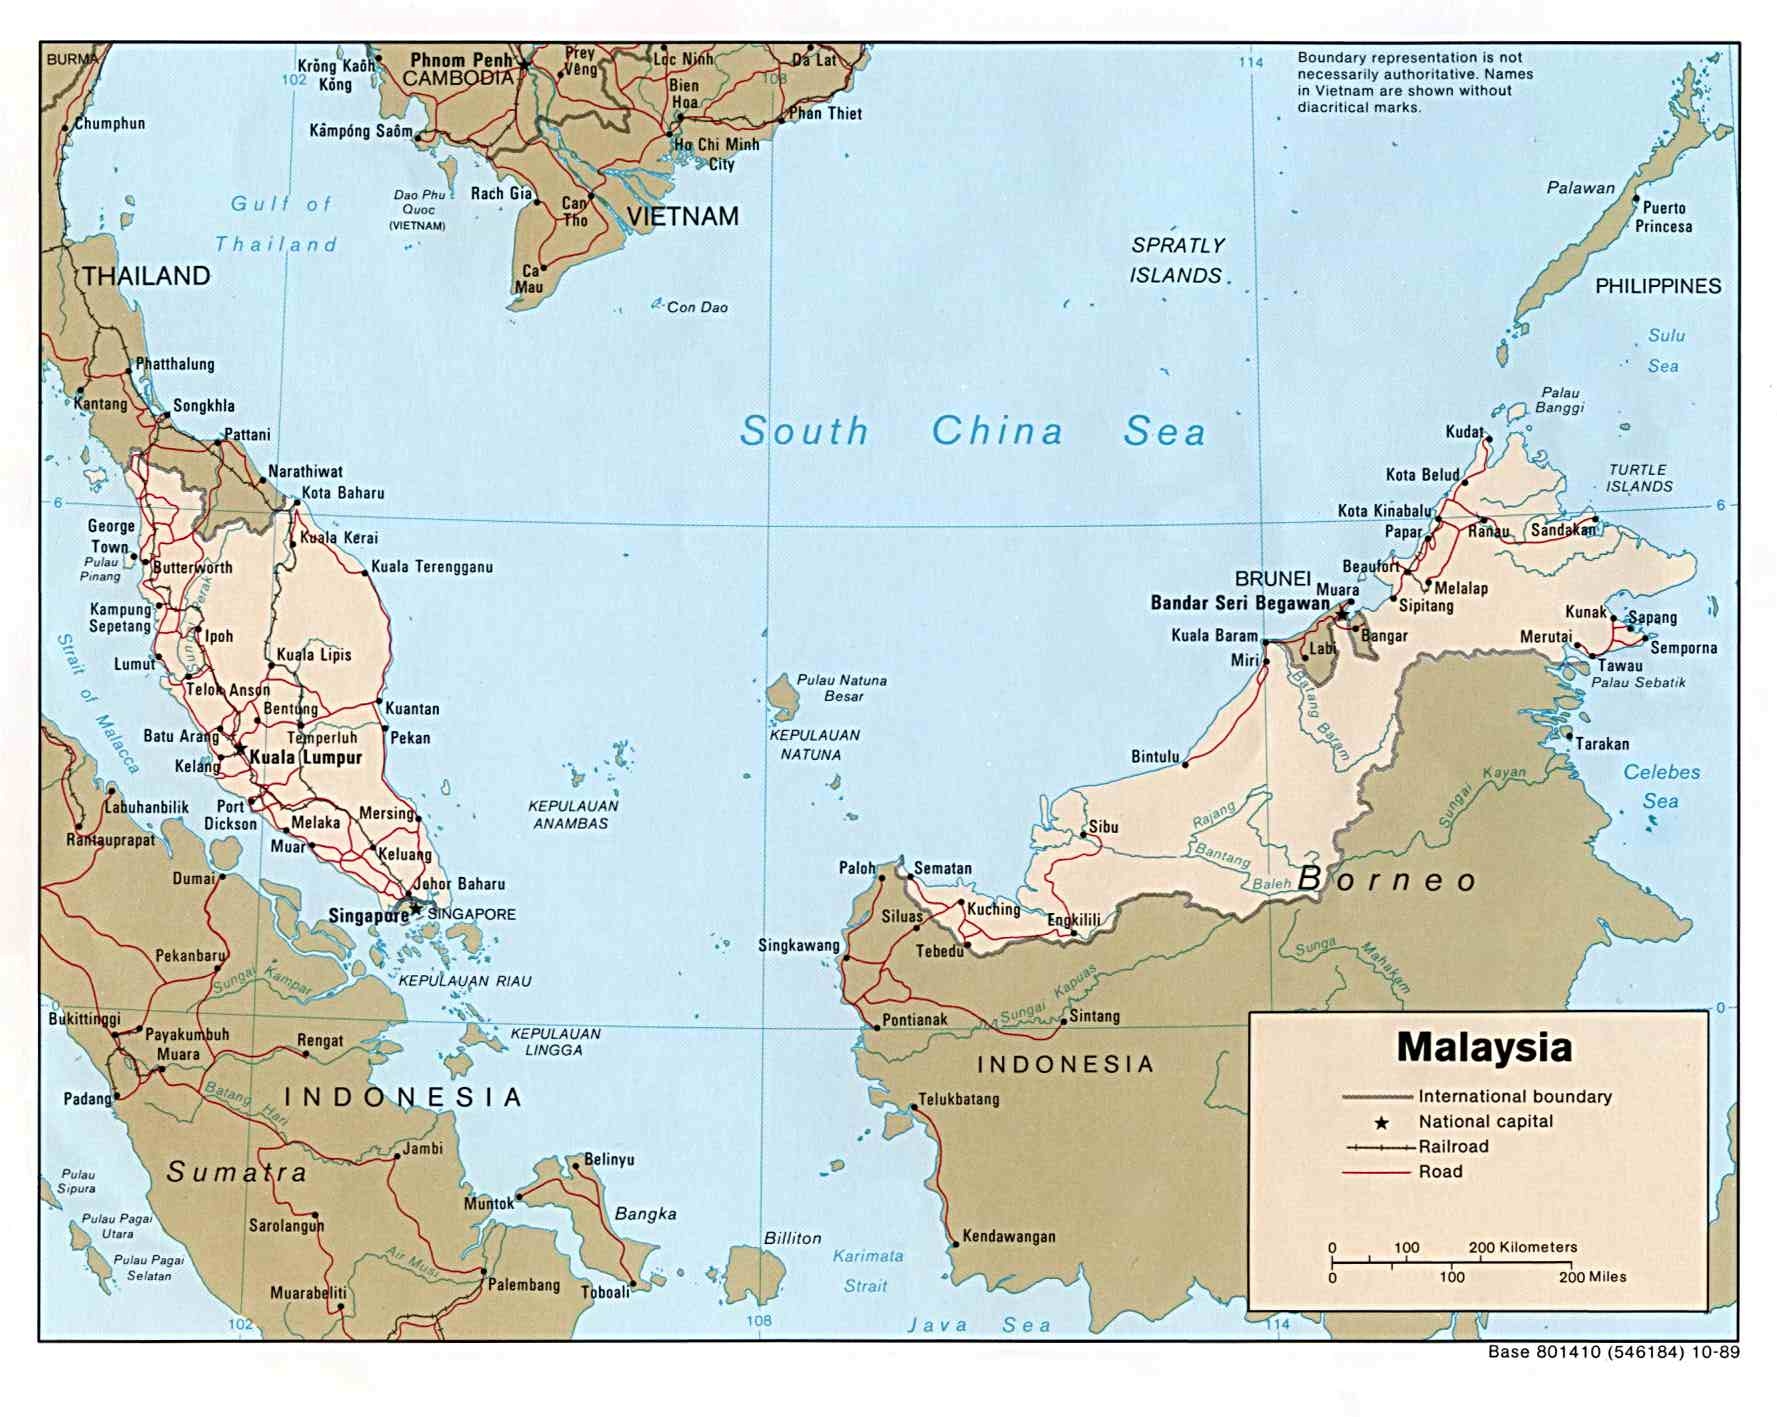 Malaysia map by the university of texas libraries